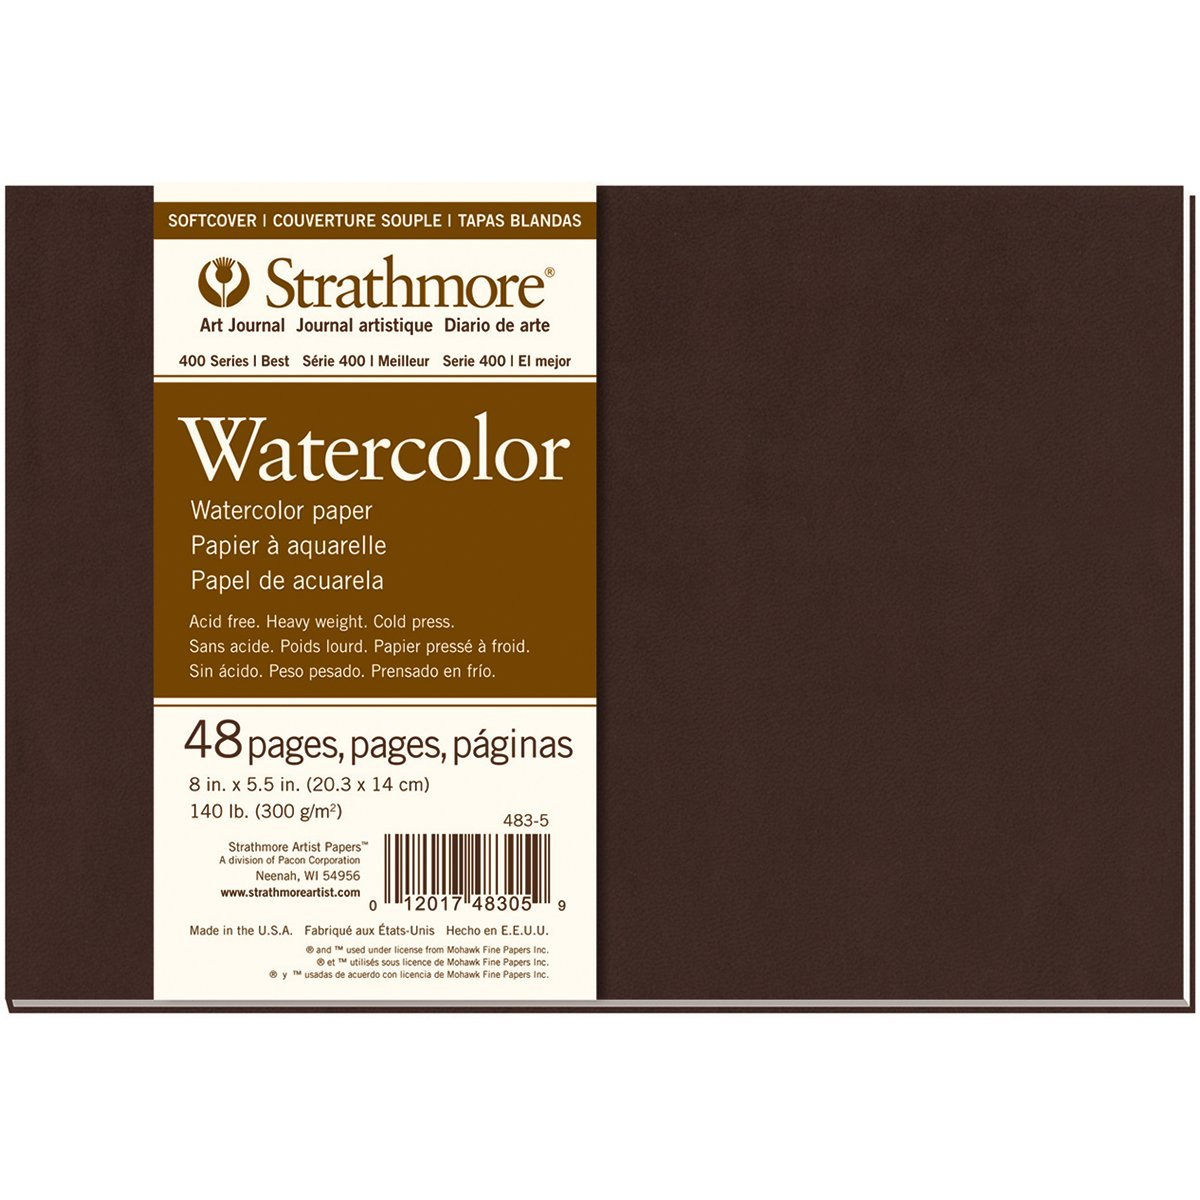 Strathmore Watercolor Sketchbook Review